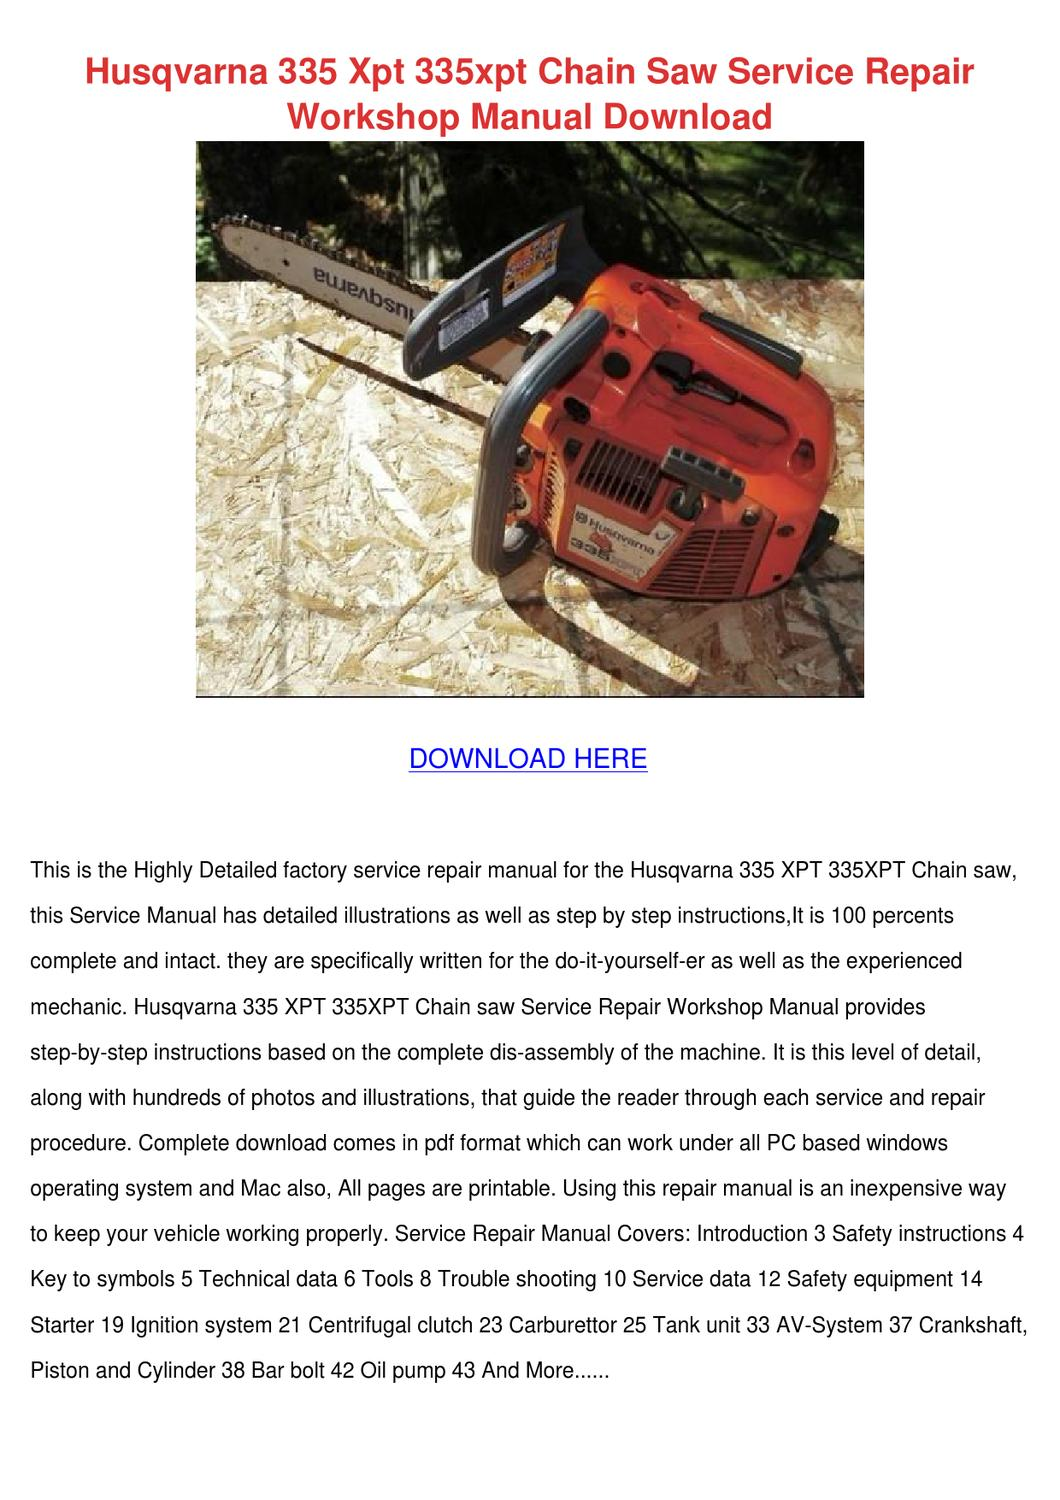 Husqvarna 335 Xpt 335xpt Chain Saw Service Re by SeanPackard - issuu